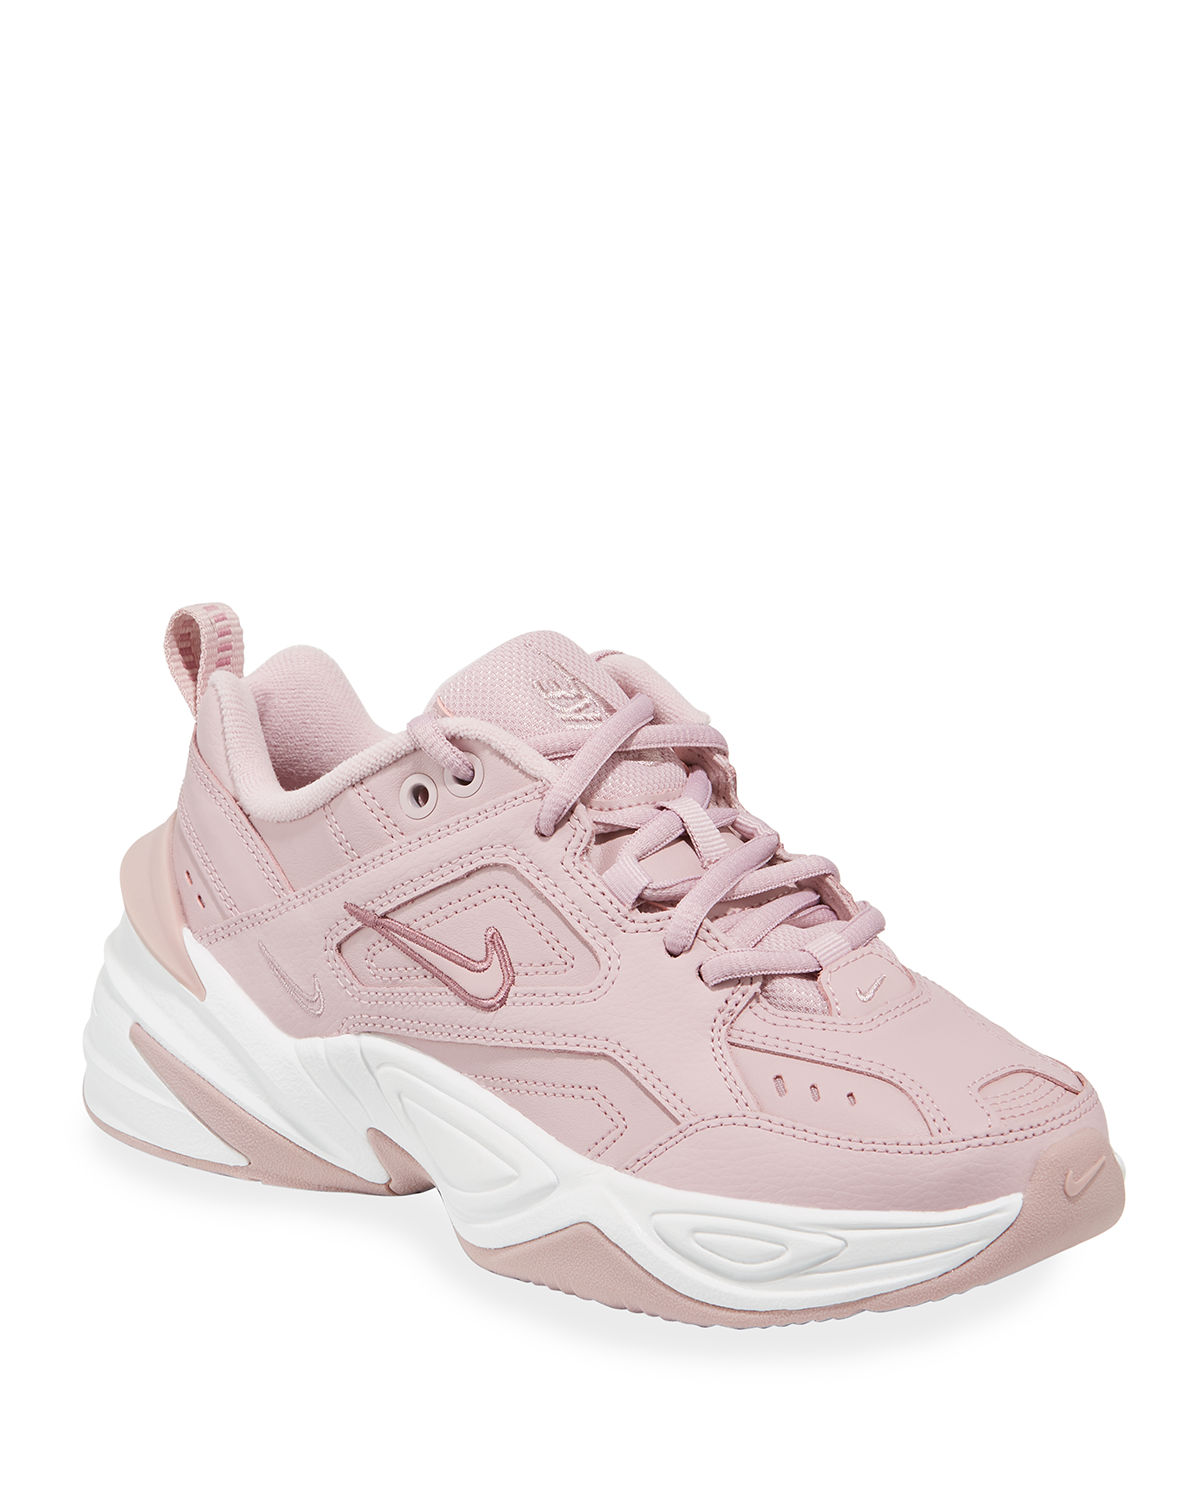 ea91a8d5787 Nike M2K Tekno Leather Sneakers